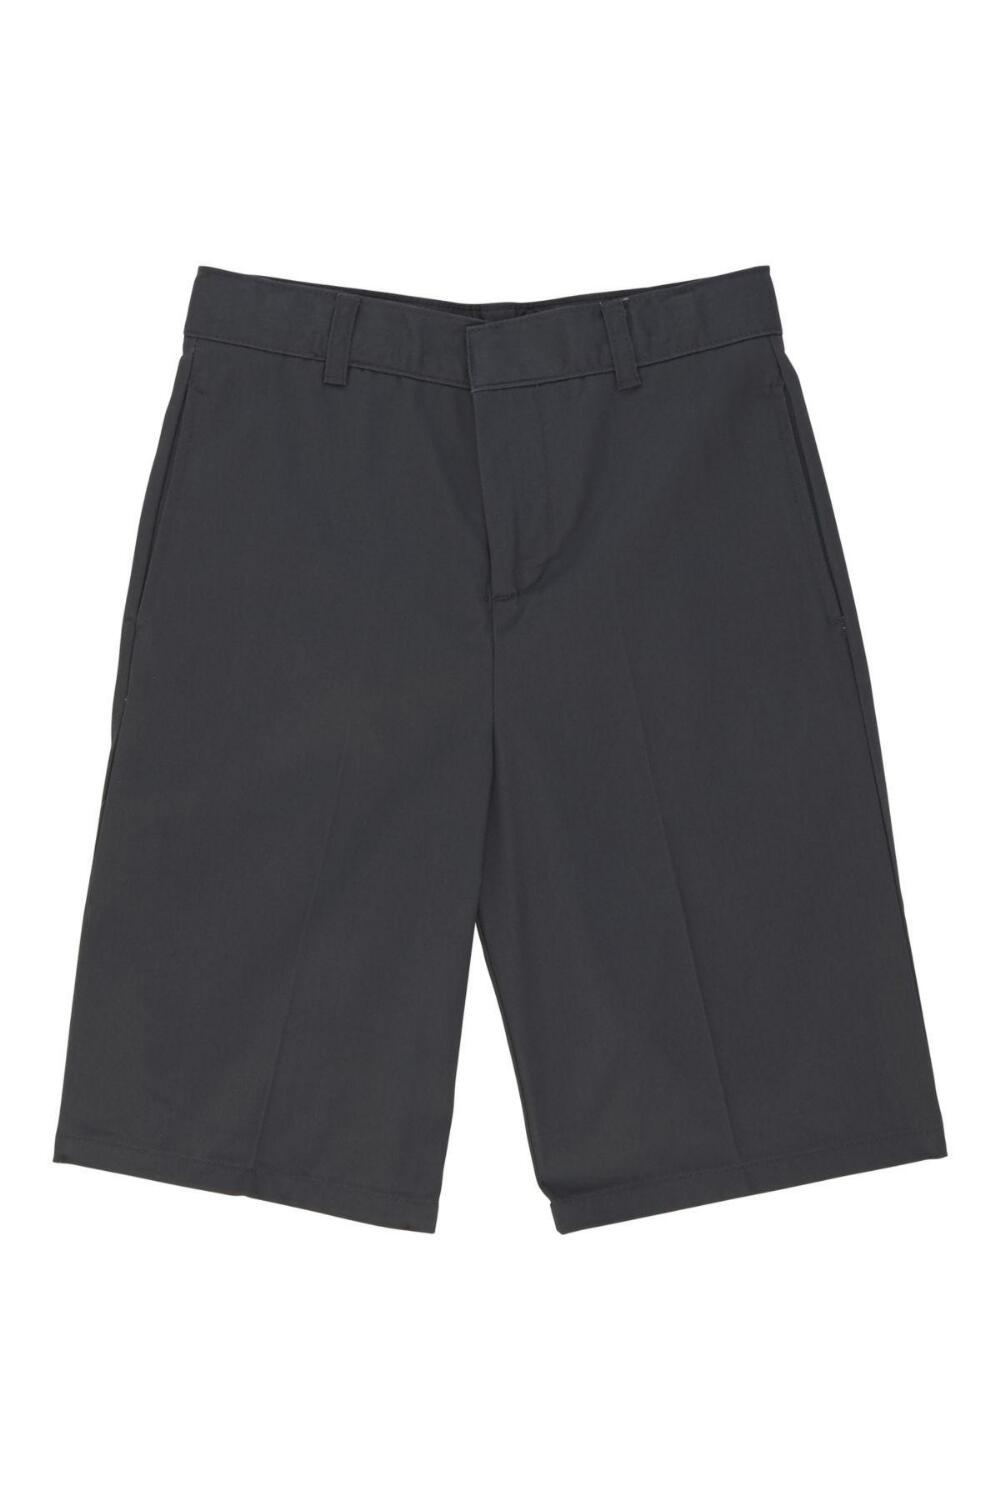 Boys Flat Front Adjustable Waist Uniform Shorts (Boy's Short Color: Grey - SWCS, Boy's Short Size: Size 4)